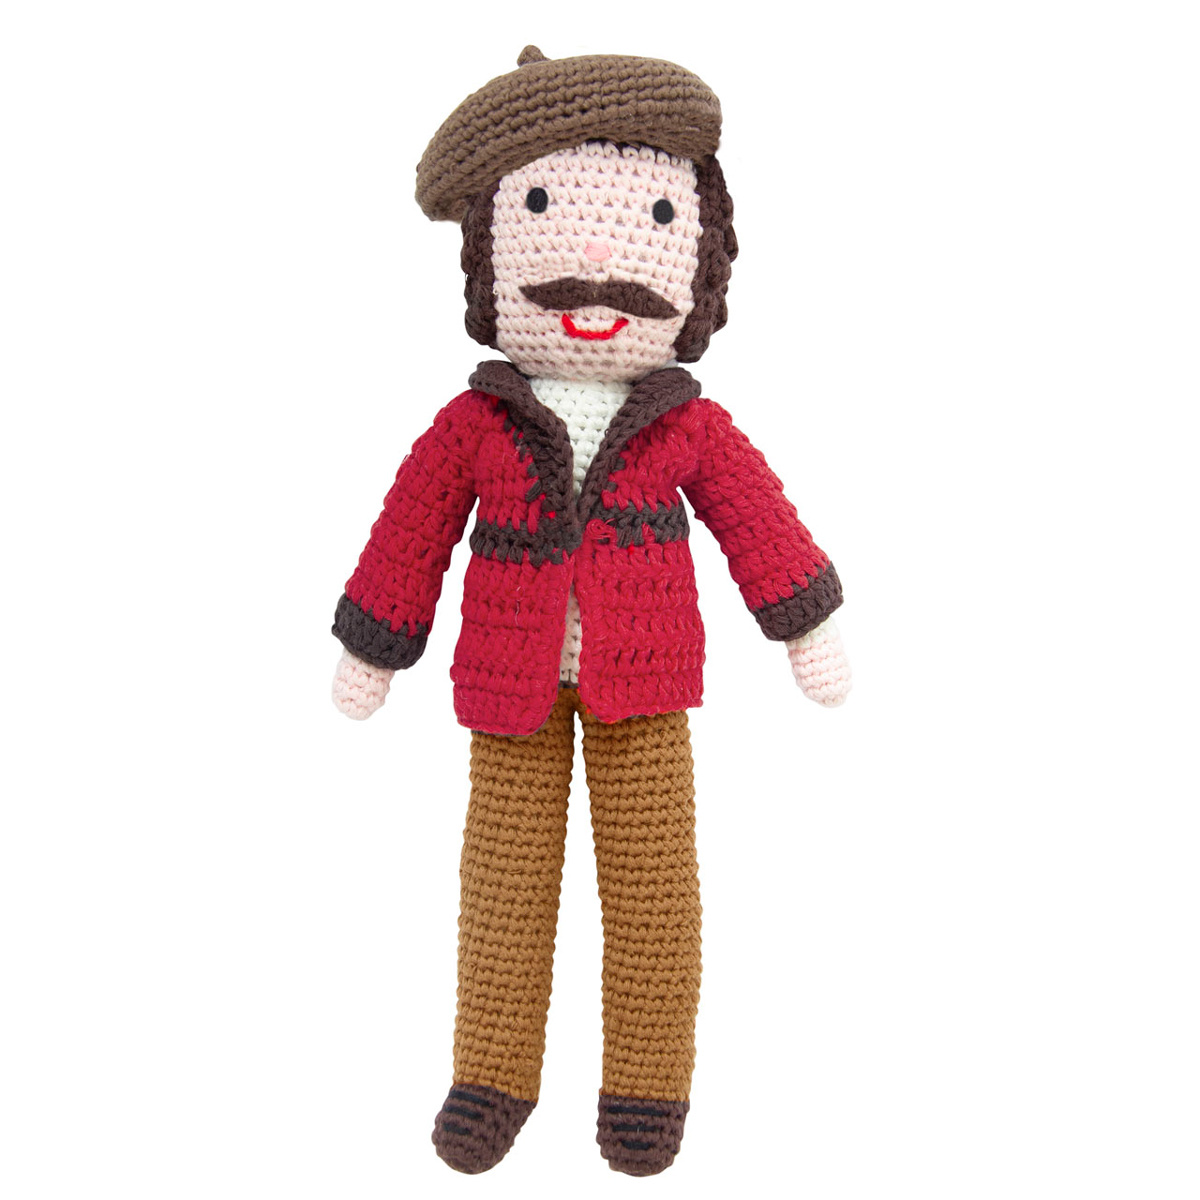 Crocheted toy Rembrandt van Rijn